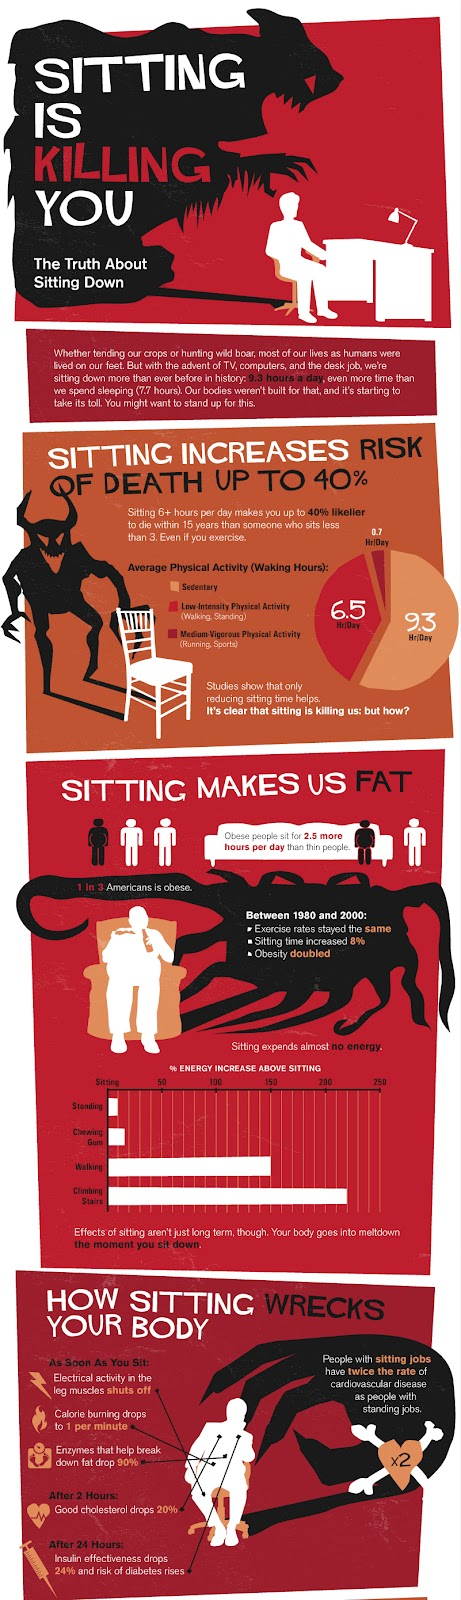 sitting-is-killing-you-A